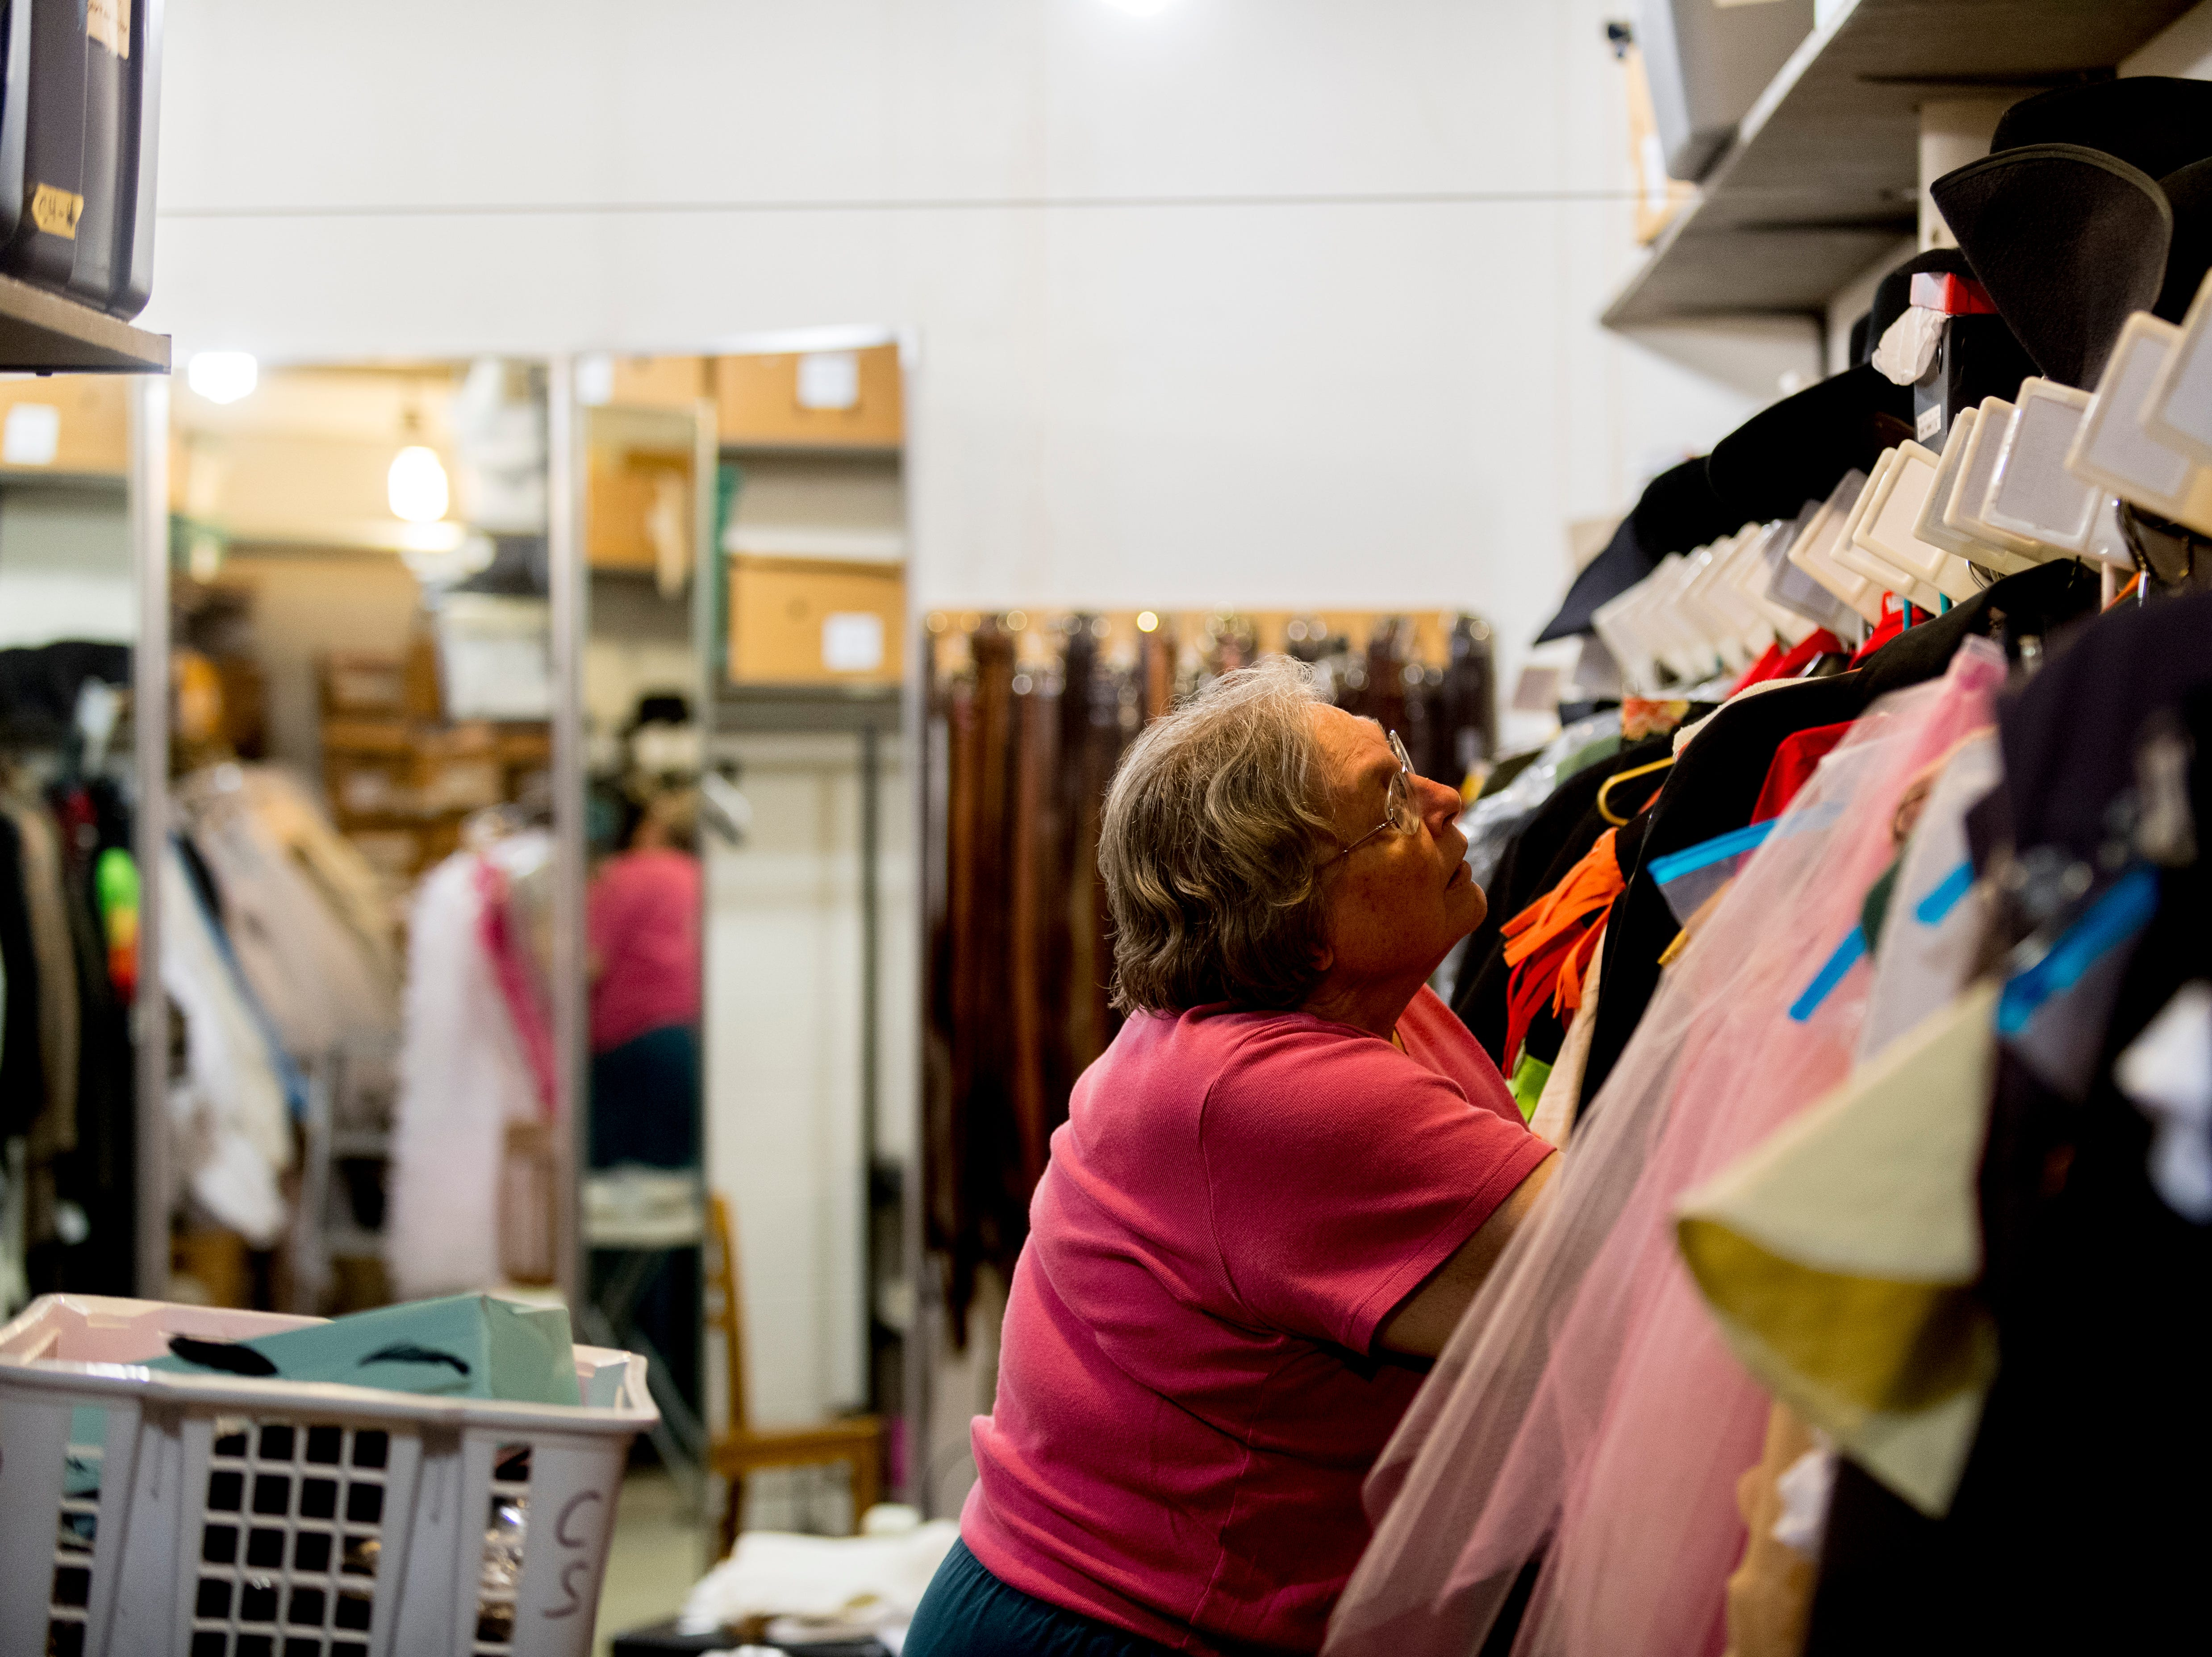 Mary DeCuir looks through a rack of clothing ahead of opening day for Candide at the Clarence Brown Theatre  in Knoxville, Tennessee on Tuesday, August 14, 2018. Leonard BernsteinÕs acclaimed operetta, Candide, is to open Friday, August 31, with previews beginning August 29.